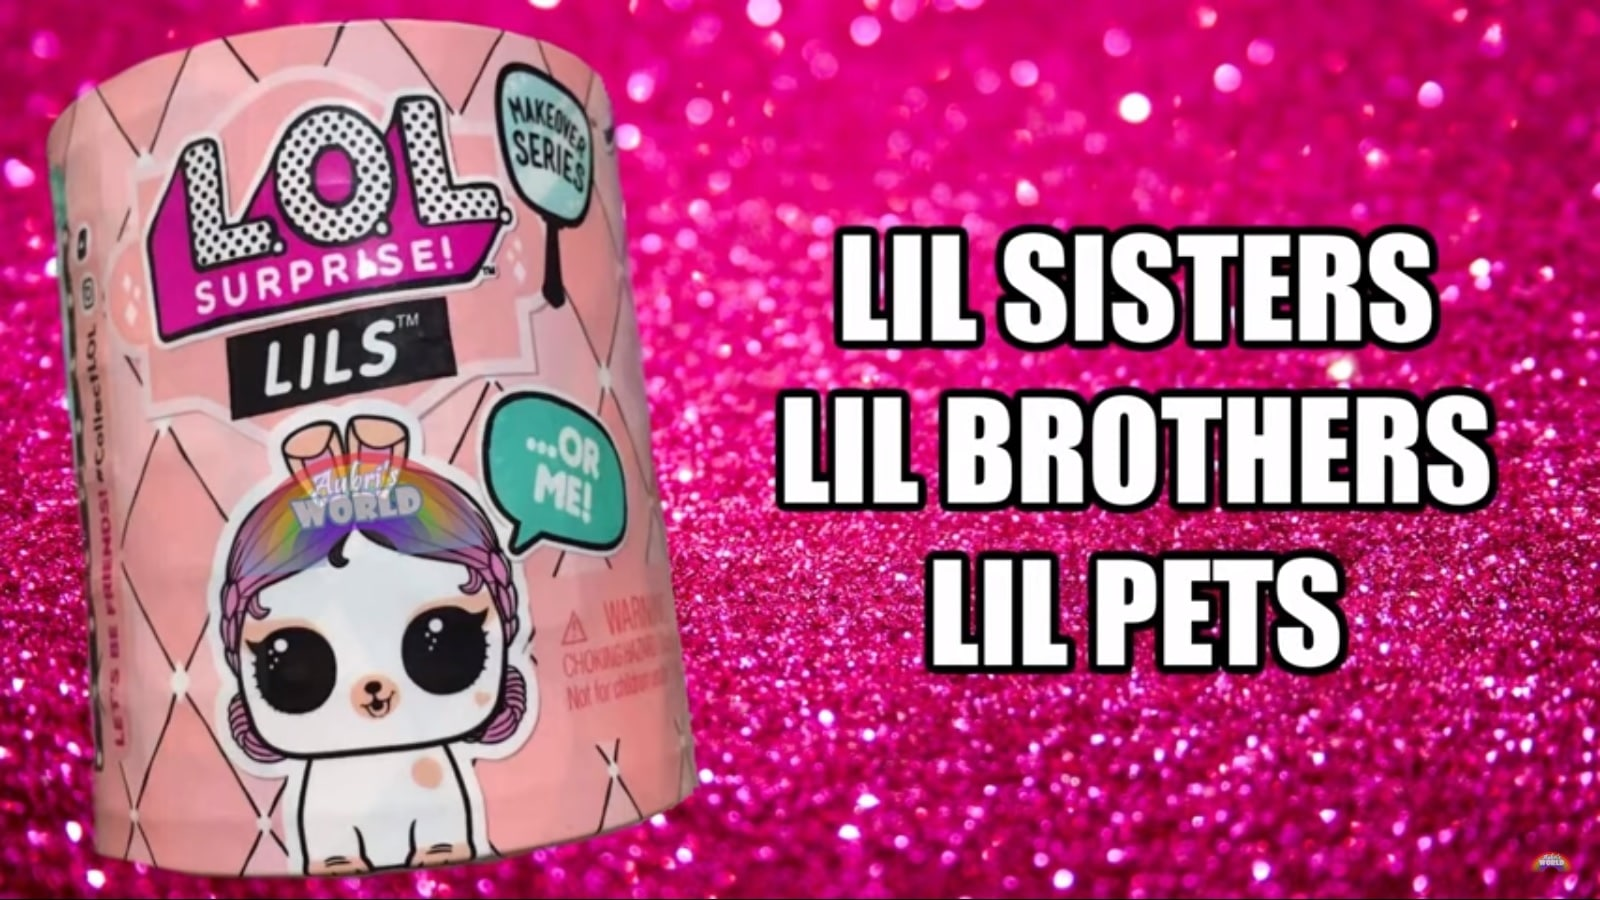 Brothers or Pets LOL SURPRISE  Lils Makeover Series 5 with Sisters